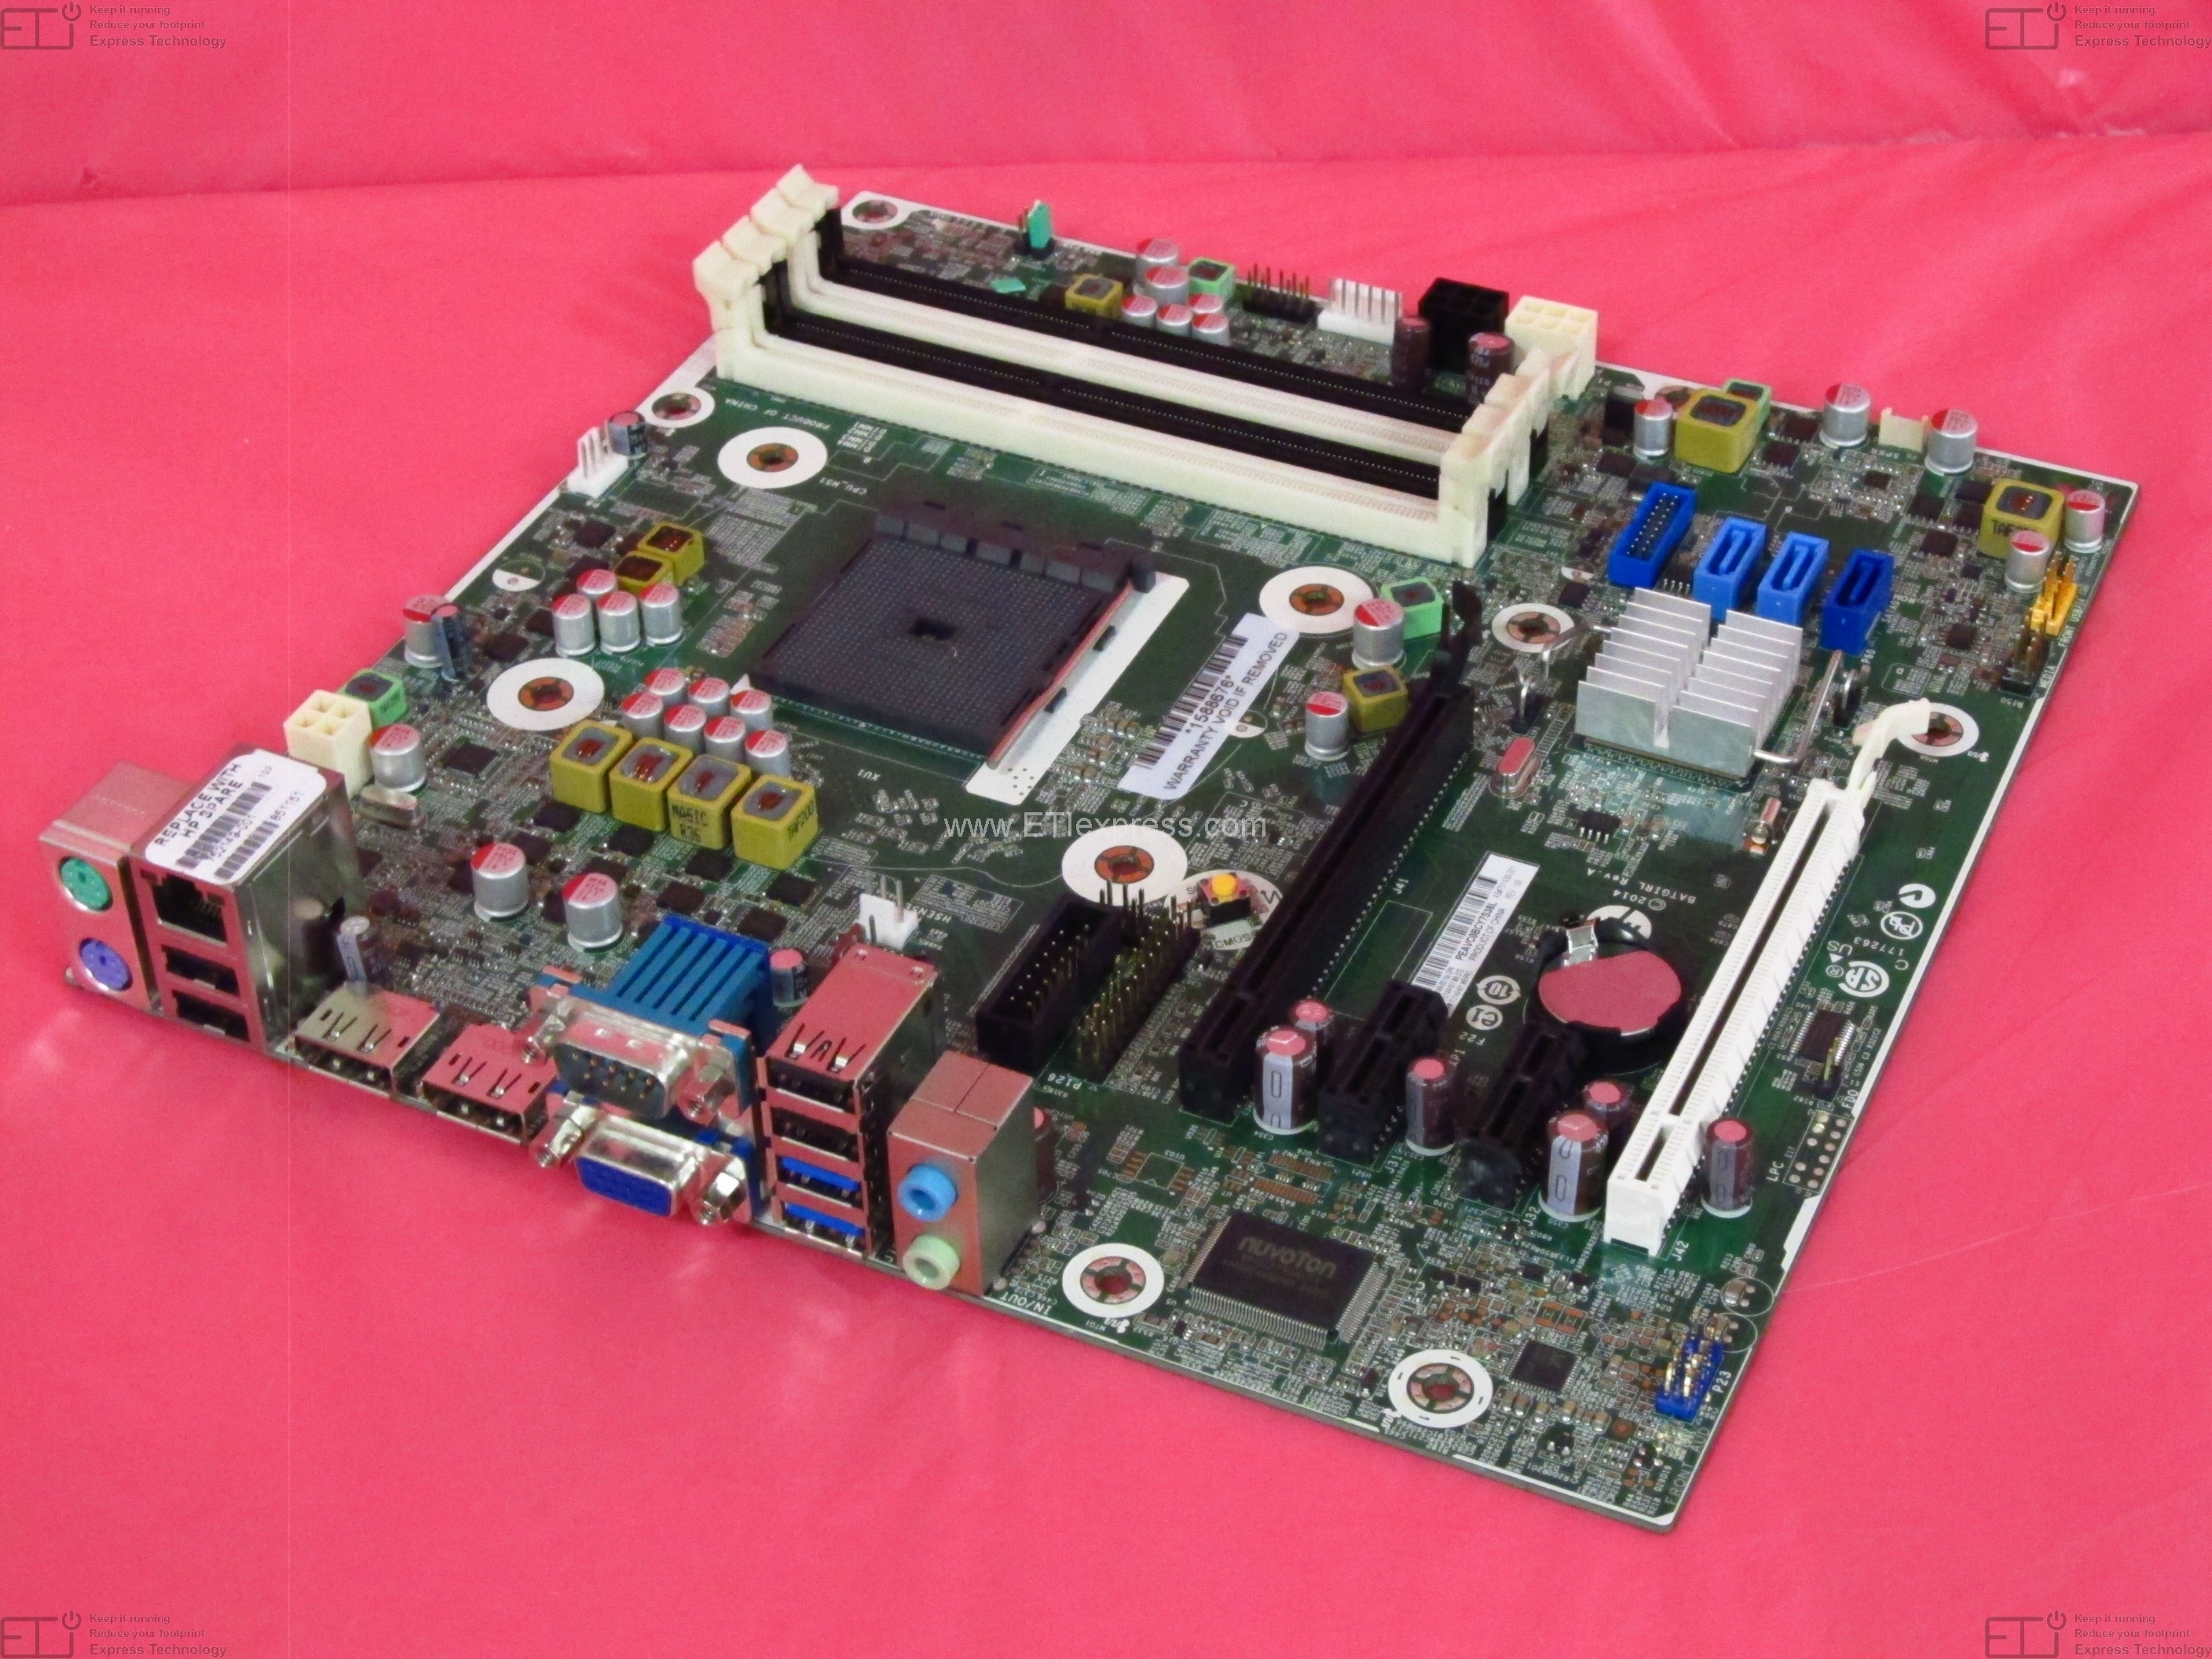 Refurbished Motherboards Removing And Replacing Parts Dell Latitude C600 C500 Series Service 752149 001